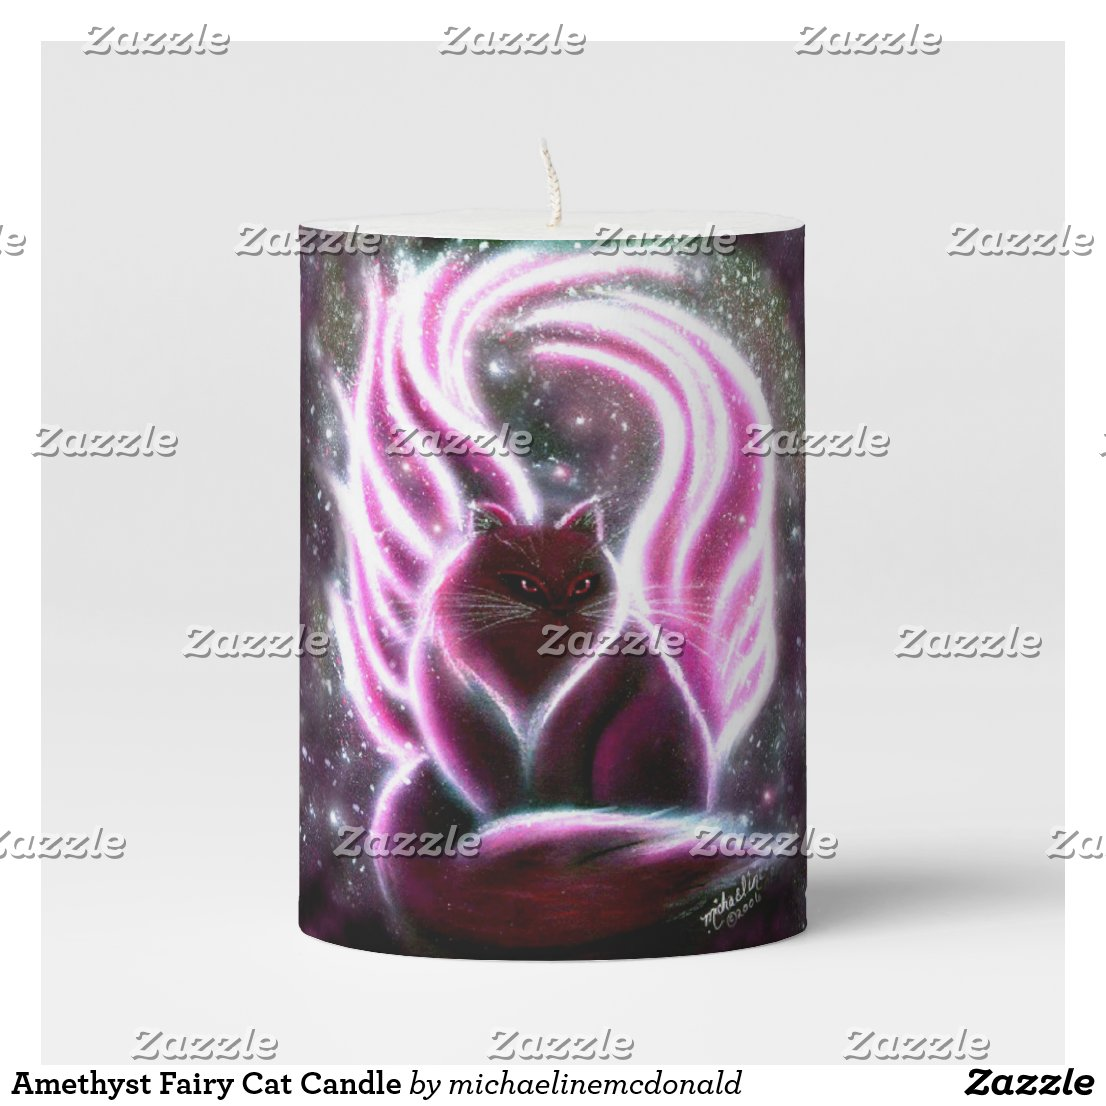 Amethyst Fairy Cat Candle